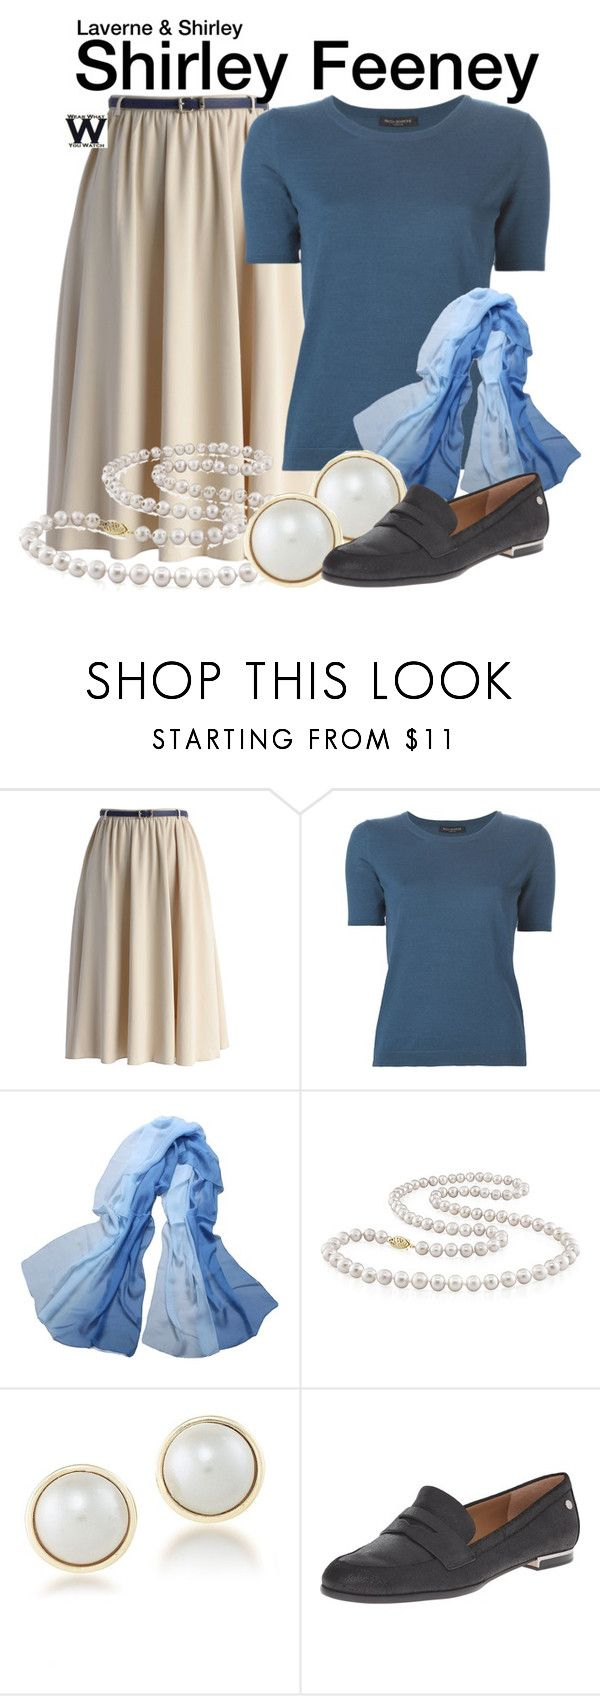 """""""Laverne & Shirley"""" by wearwhatyouwatch ❤ liked on Polyvore featuring Chicwish, Piazza Sempione, Miadora, Carolee, Calvin Klein, television and wearwhatyouwatch"""